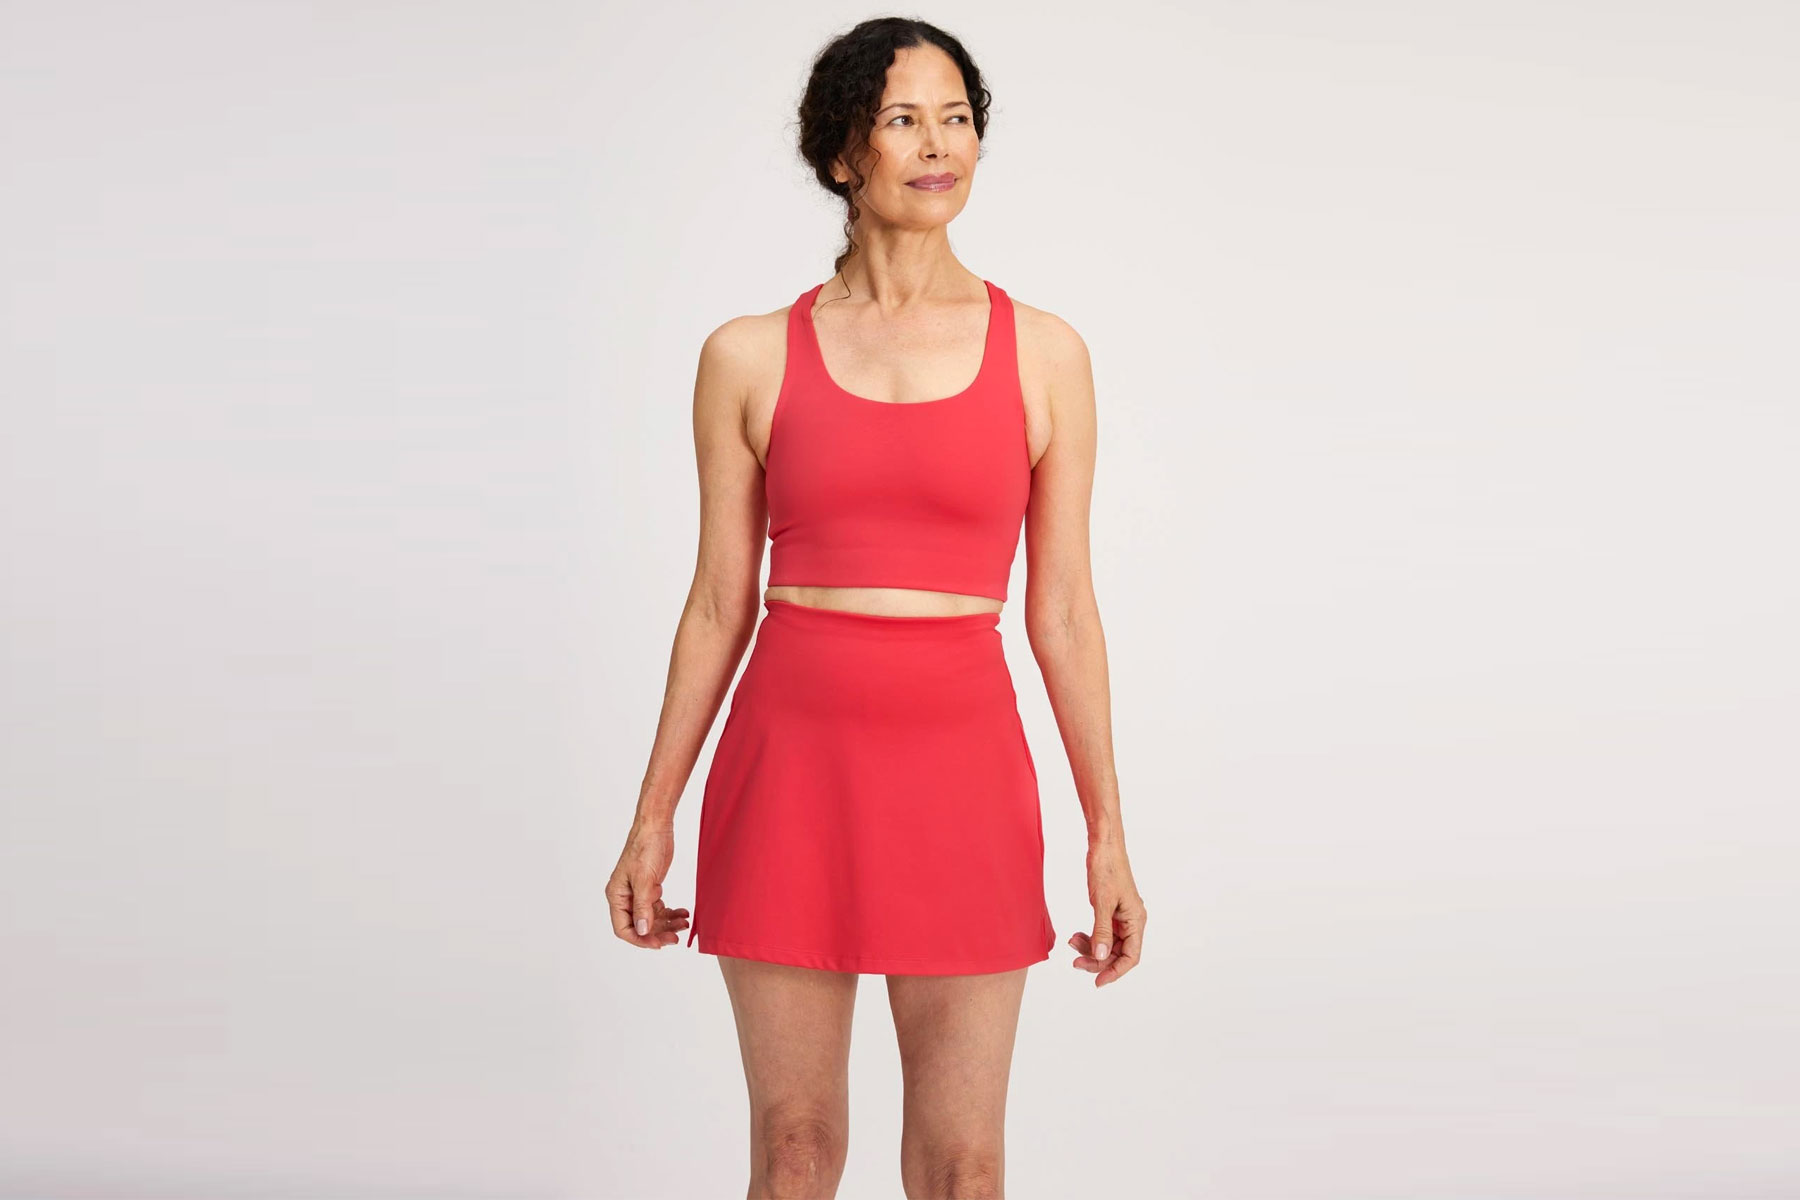 Woman wearing red sports bra and skort